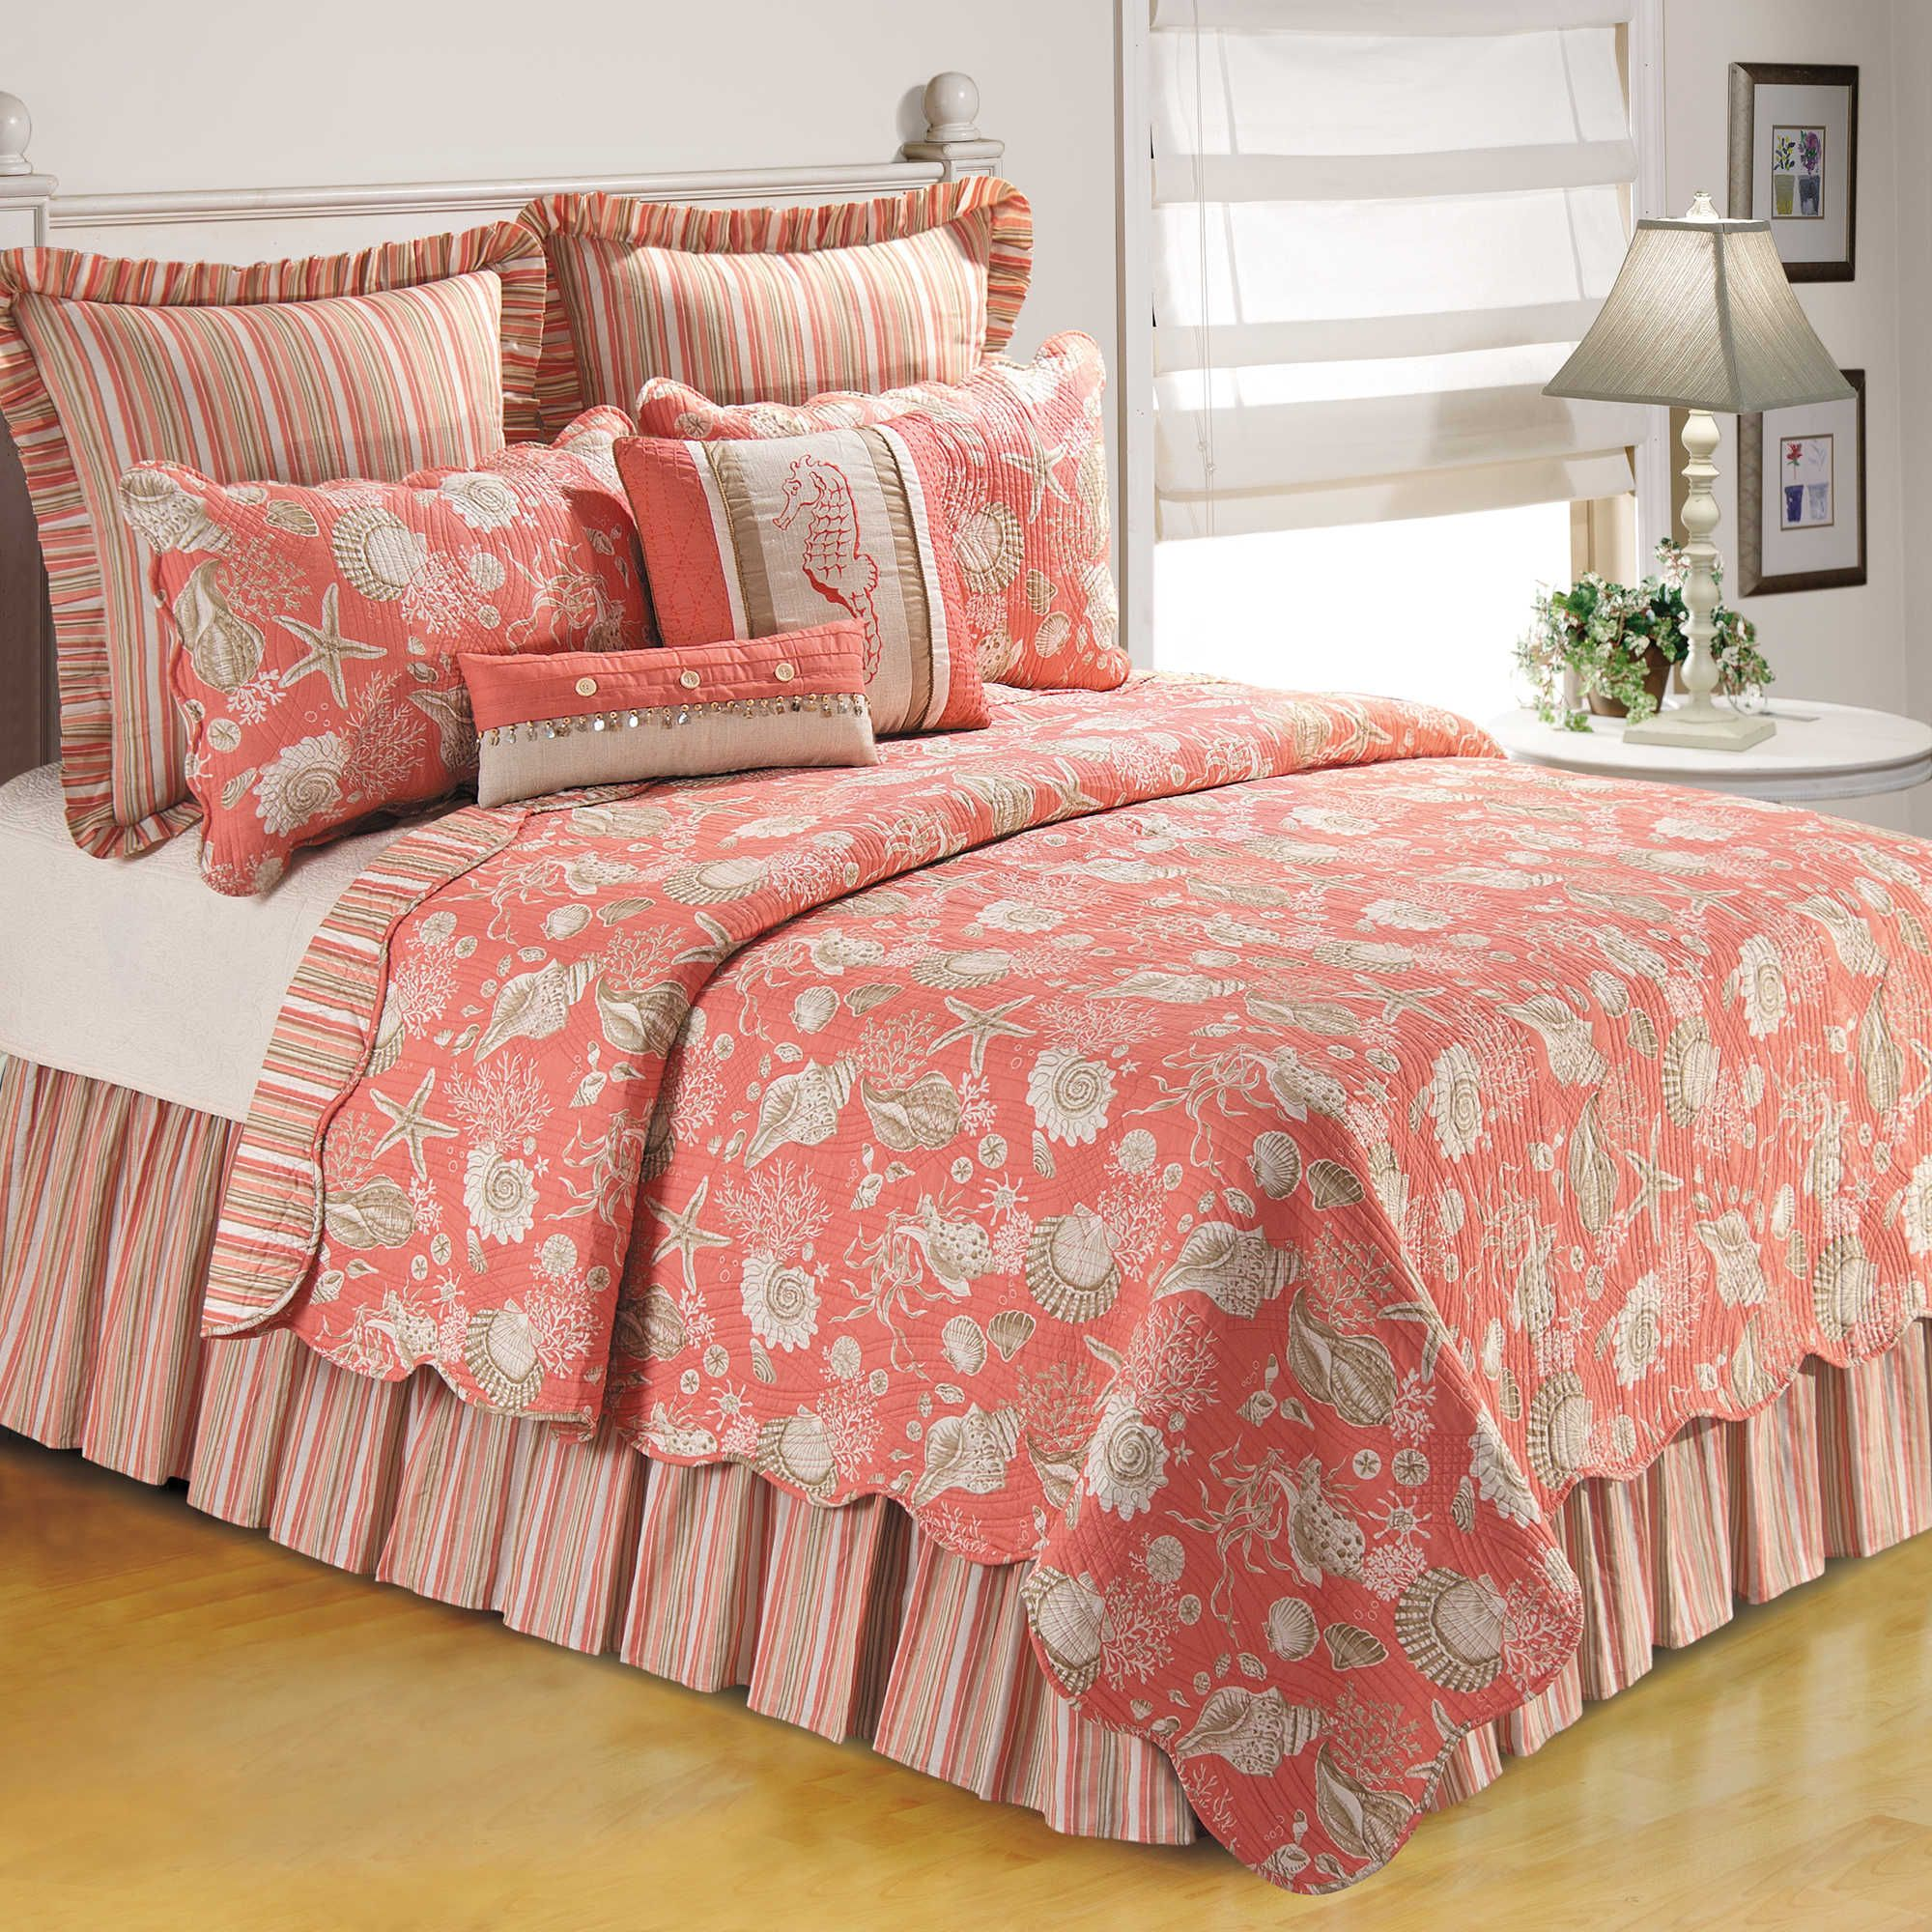 Natural Shells Quilt in Coral | Shell, Borders free and Natural : coral quilts - Adamdwight.com